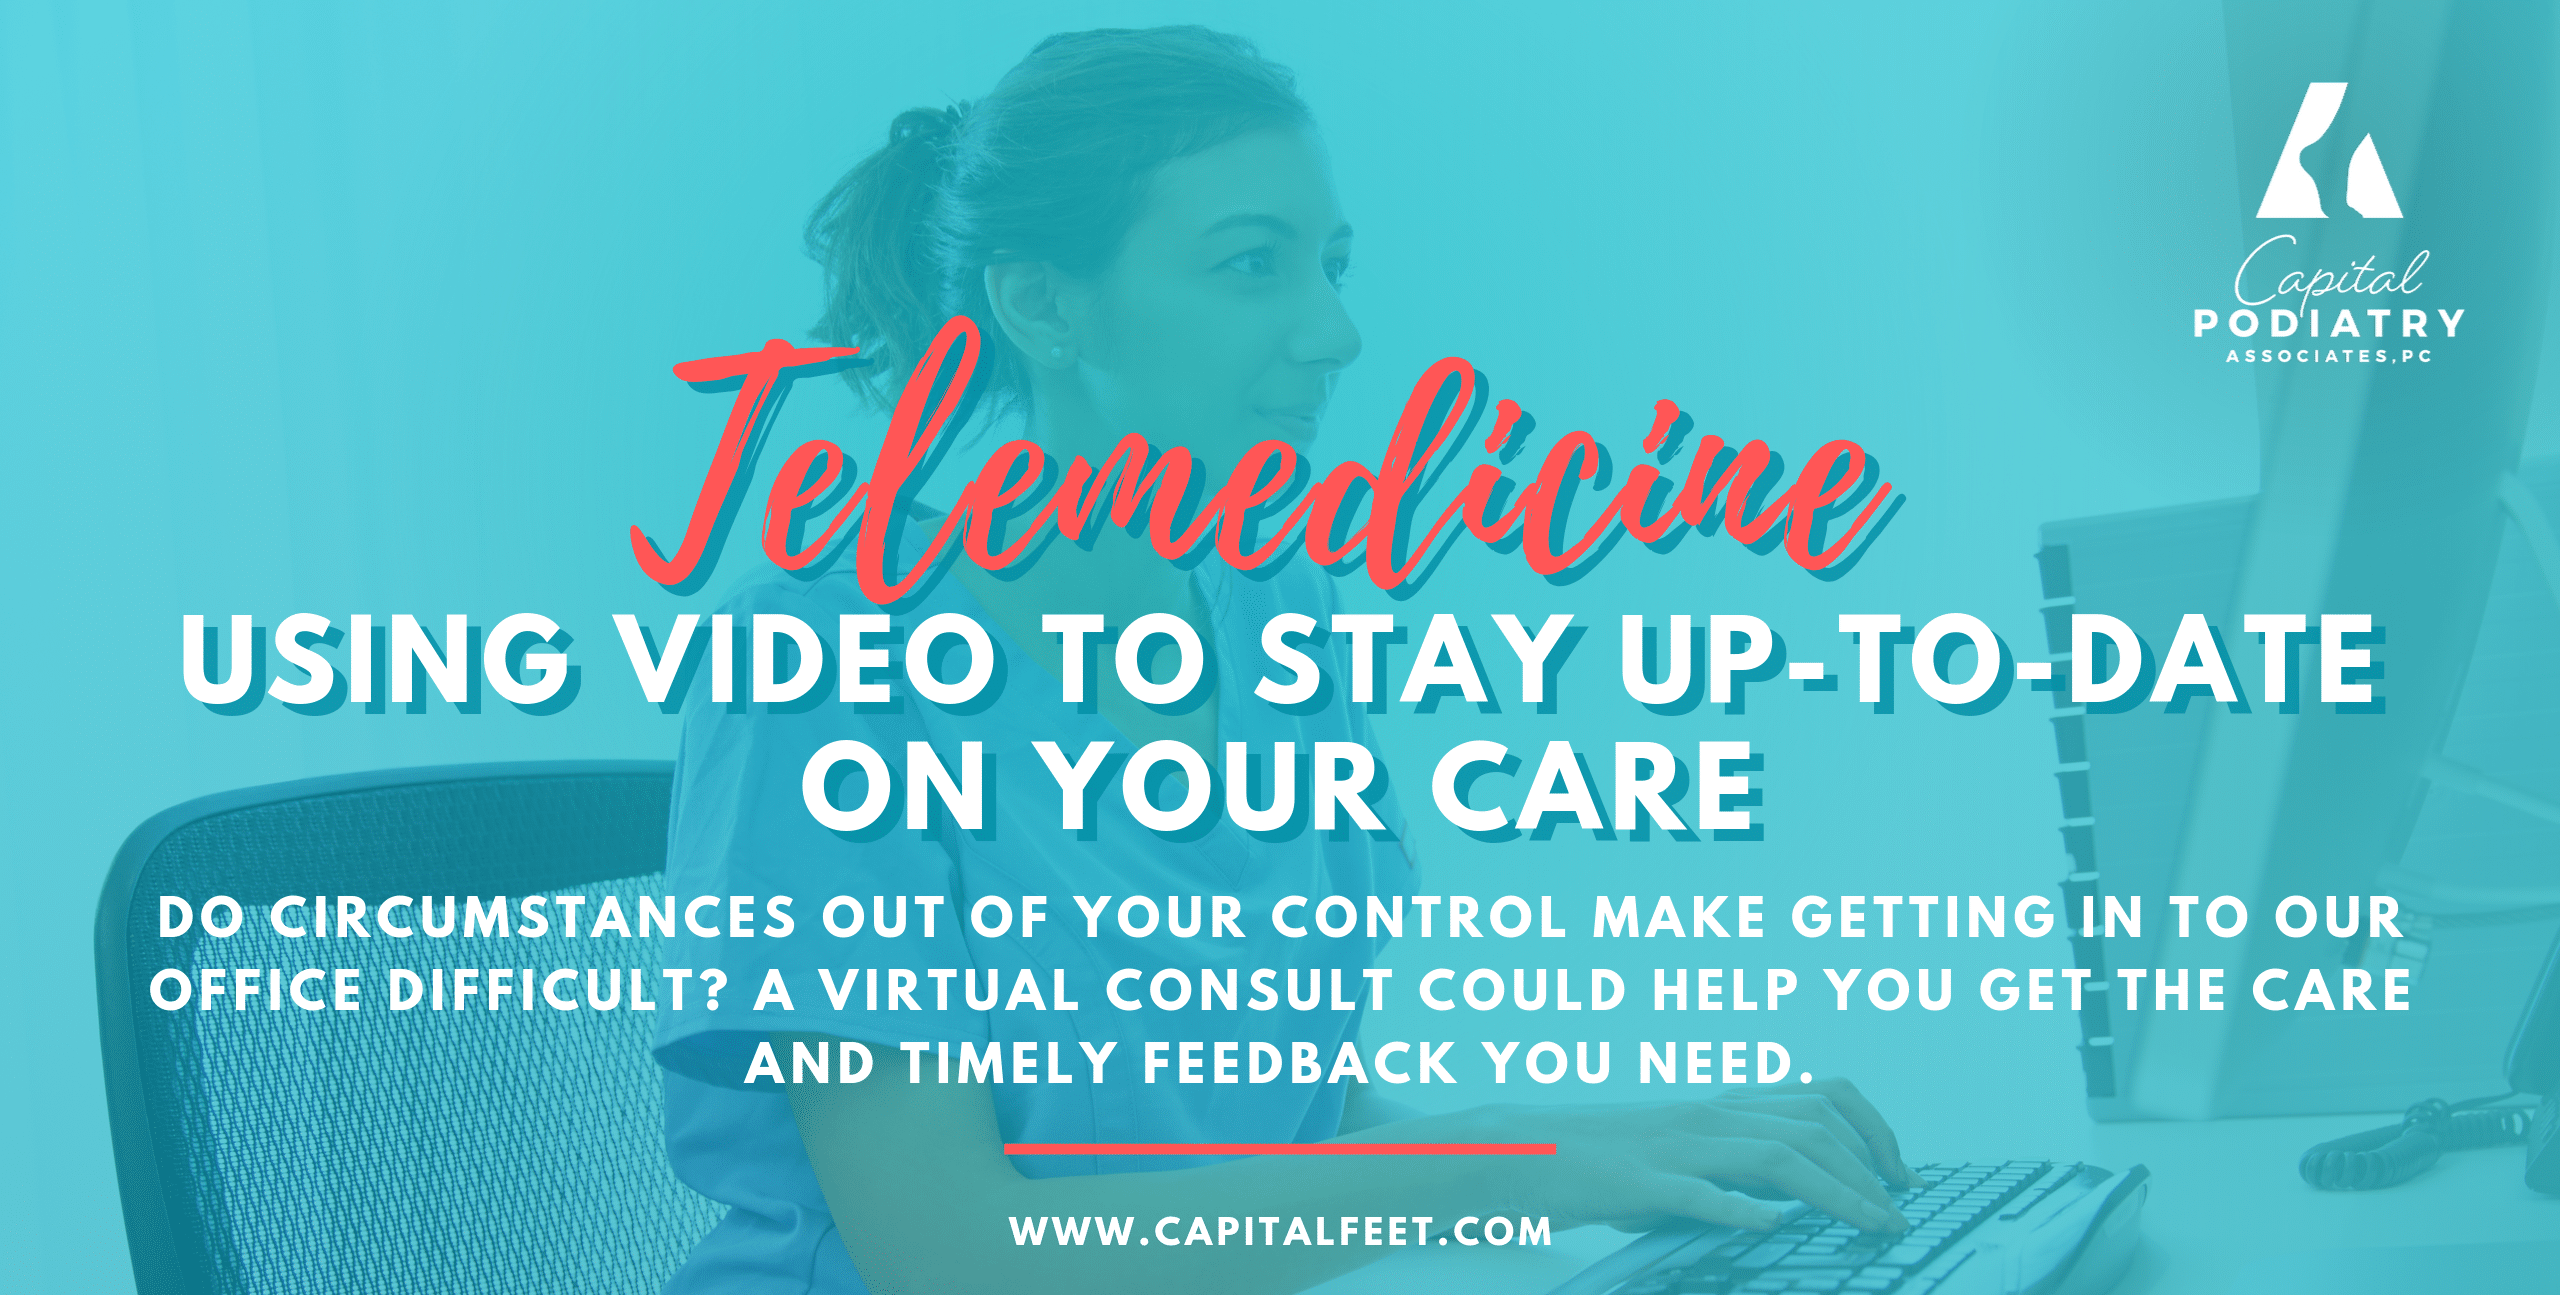 Telemedicine: Using Video To Stay Up-to-Date on Your Care